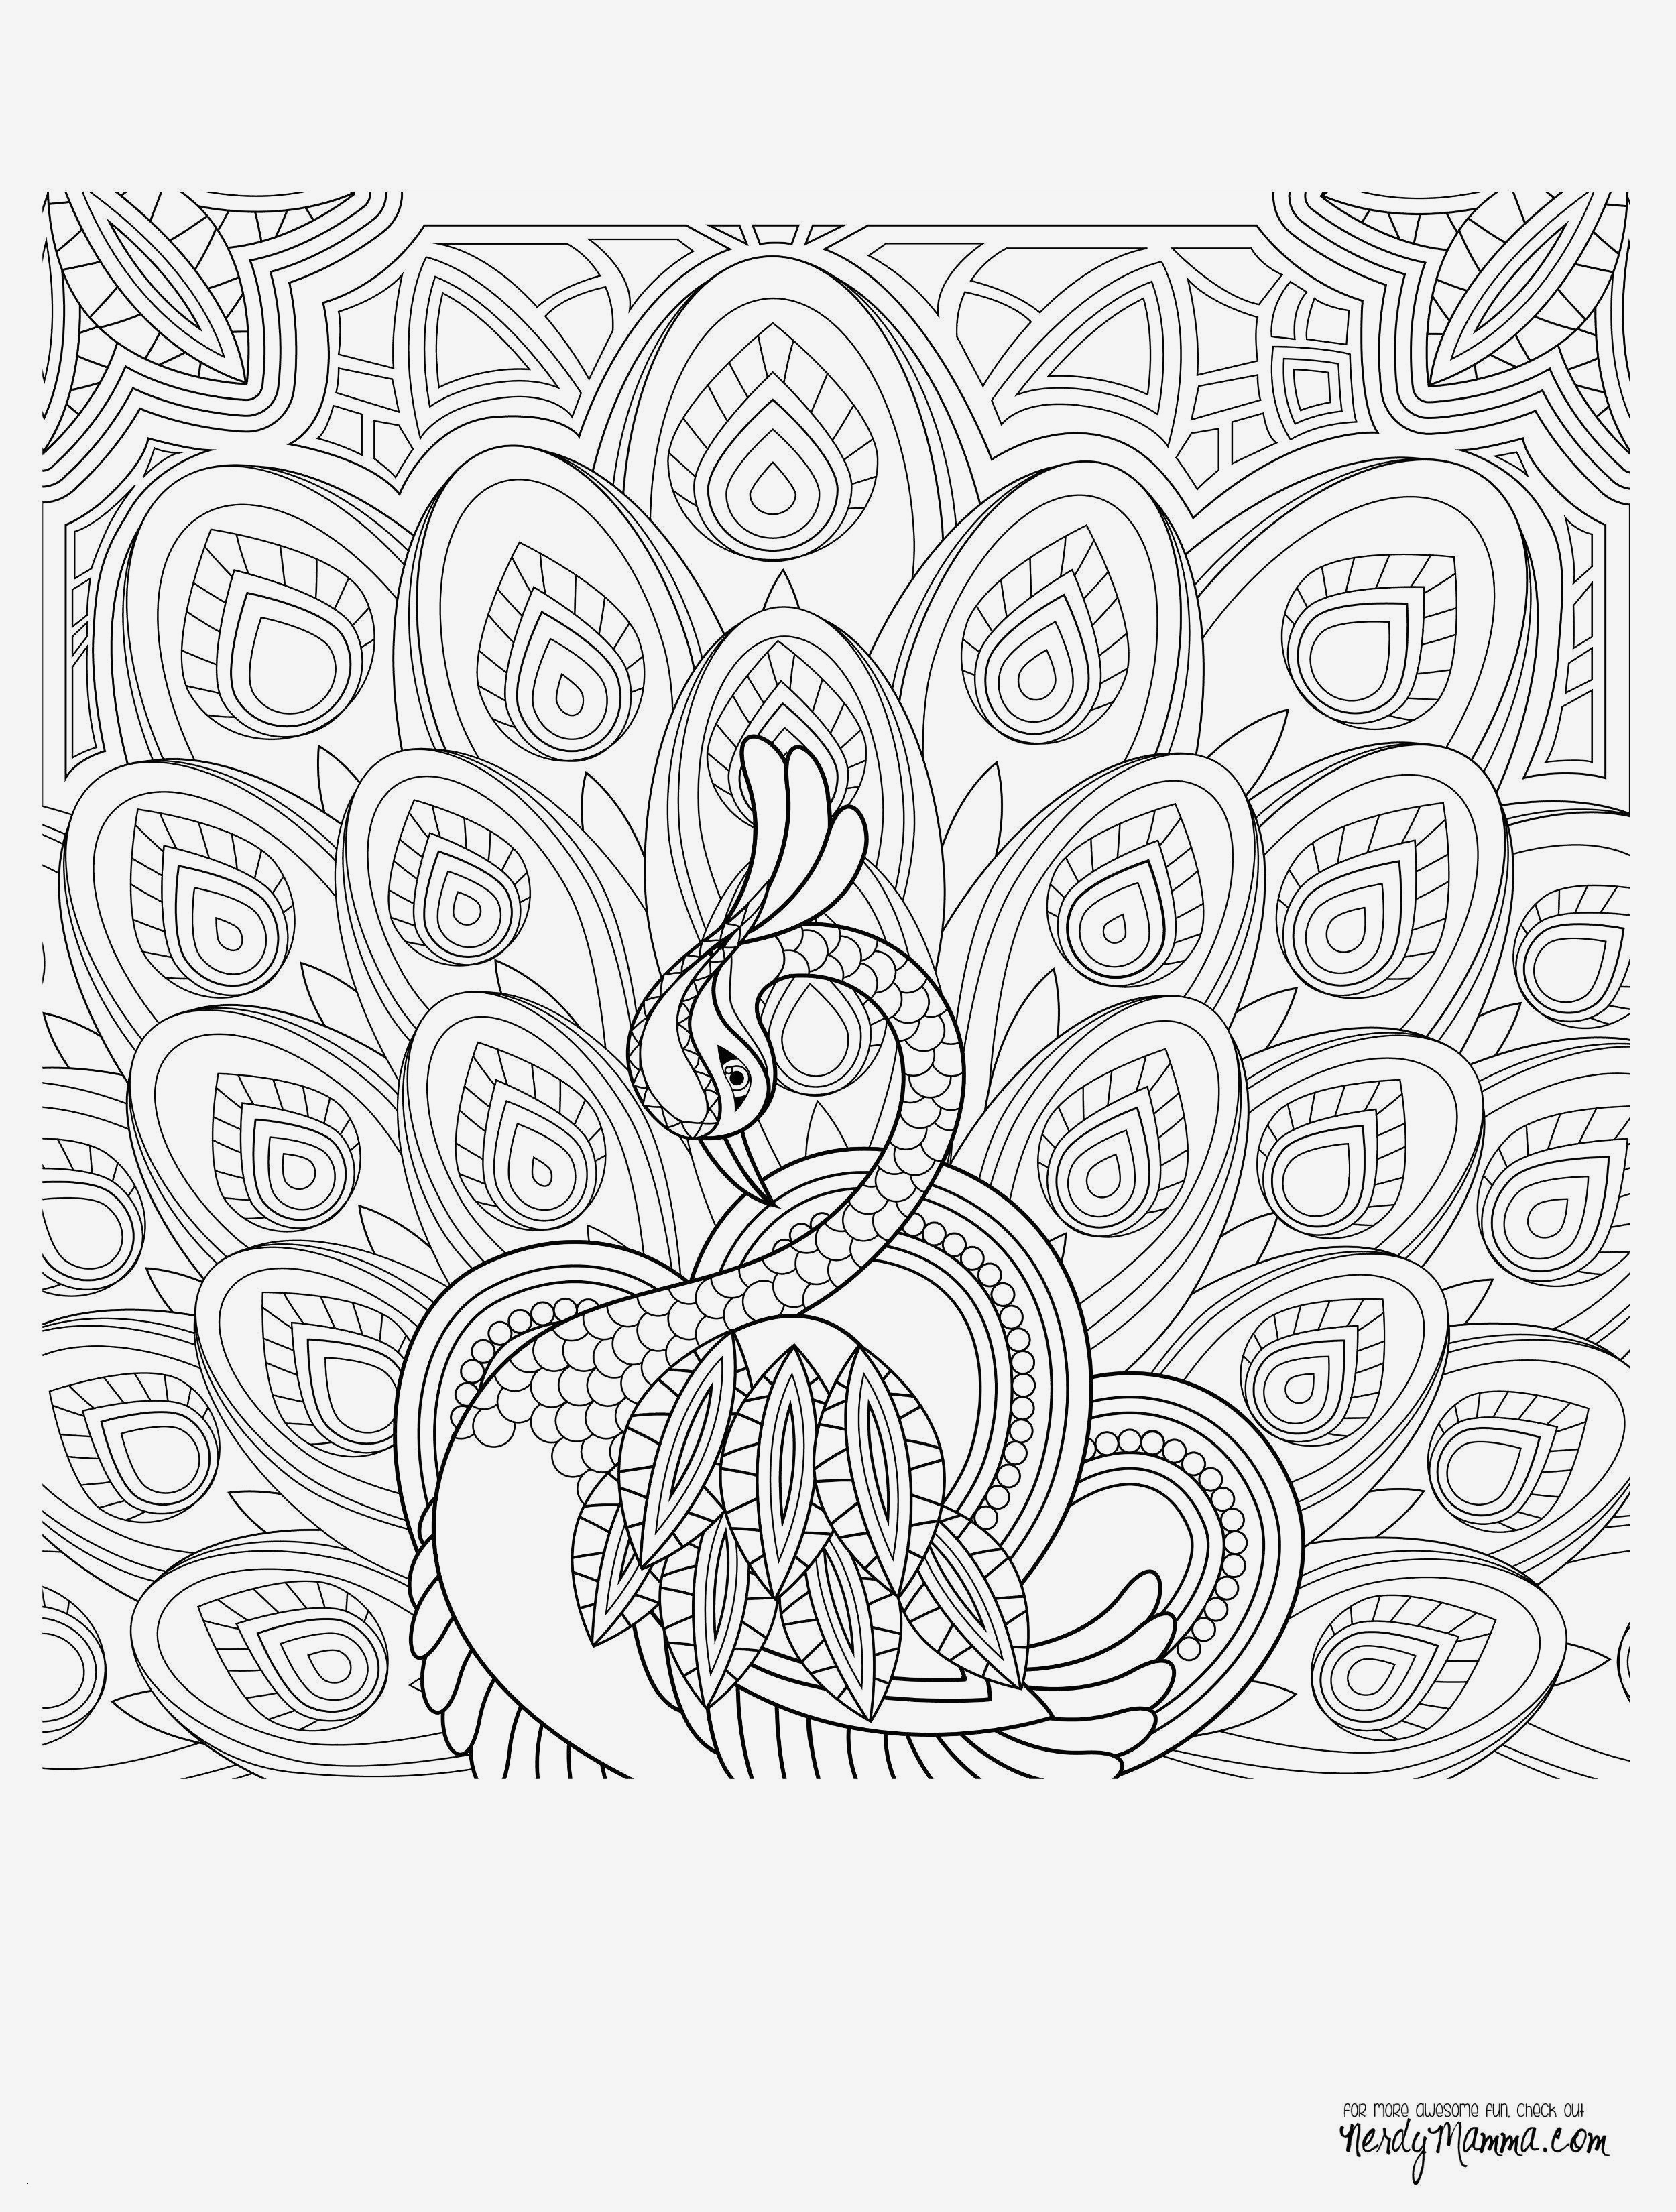 27 Patriotic Coloring Pages Download - Coloring Sheets